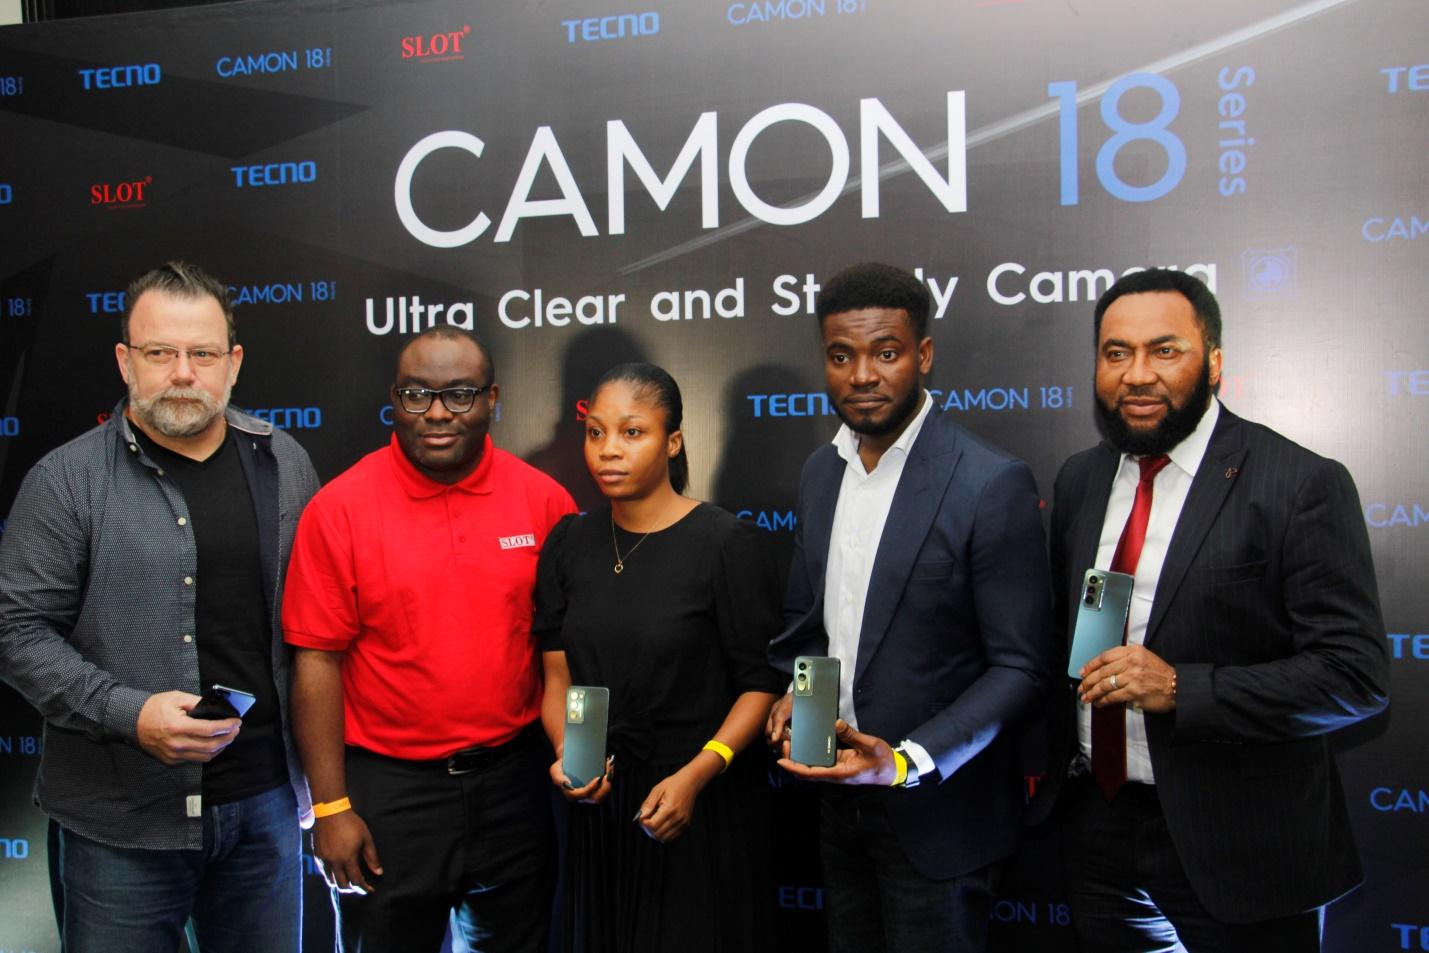 C:\Users\HP\Downloads\CAMON 18 PICTURES\Photostory of the TECNO CAMON 18 LAUNCH.JPG